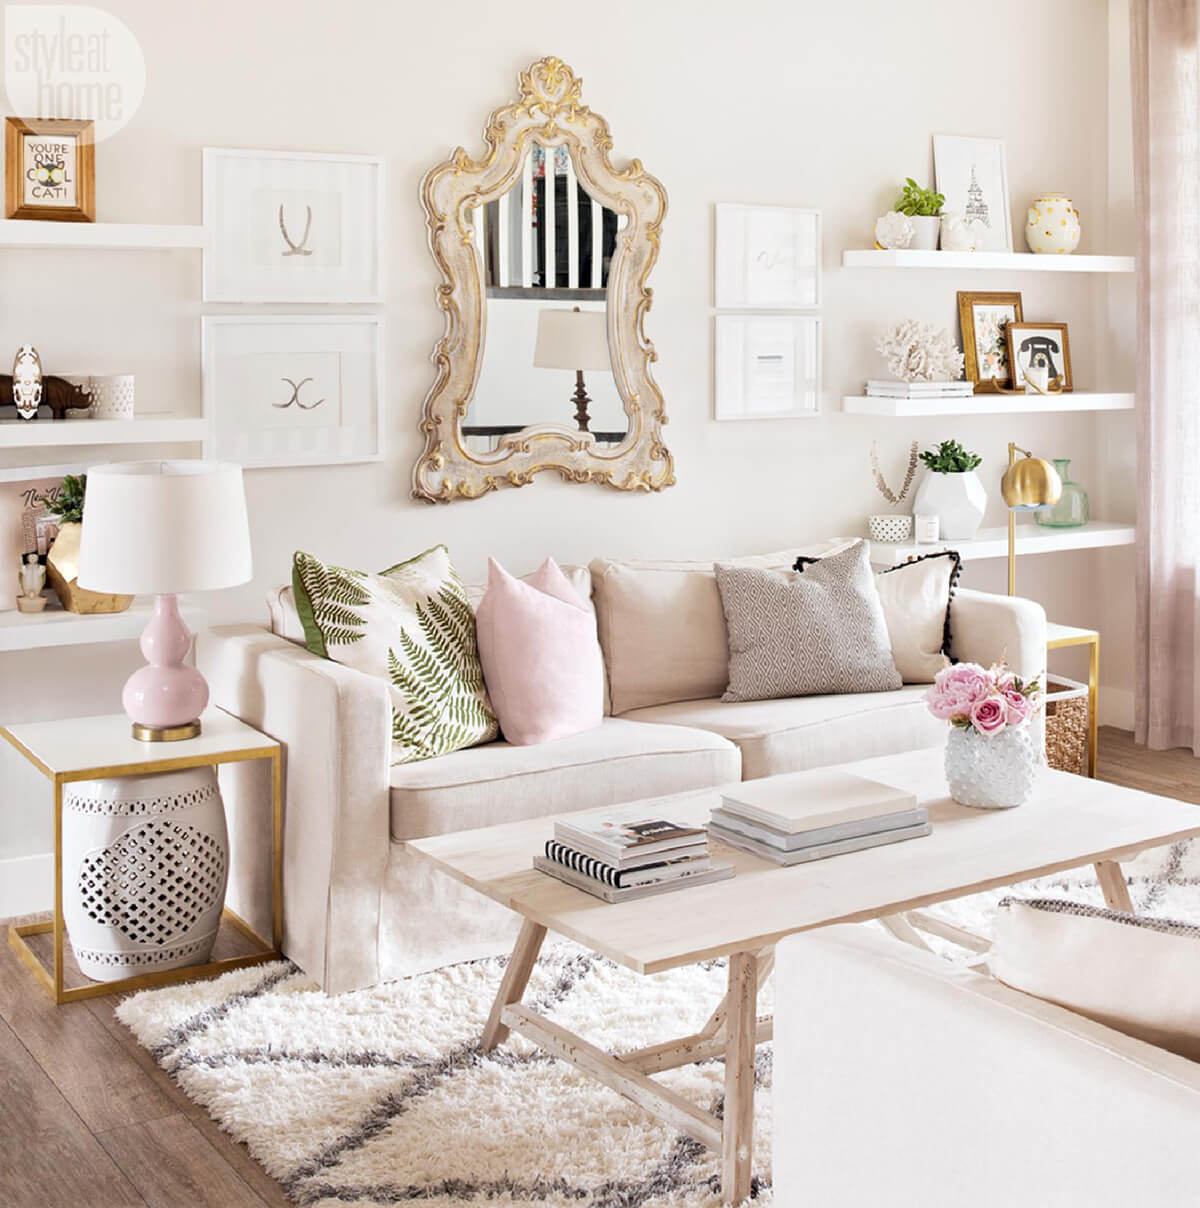 Home Office Designs Living Room Decorating Ideas: 23 Best Copper And Blush Home Decor Ideas And Designs For 2019